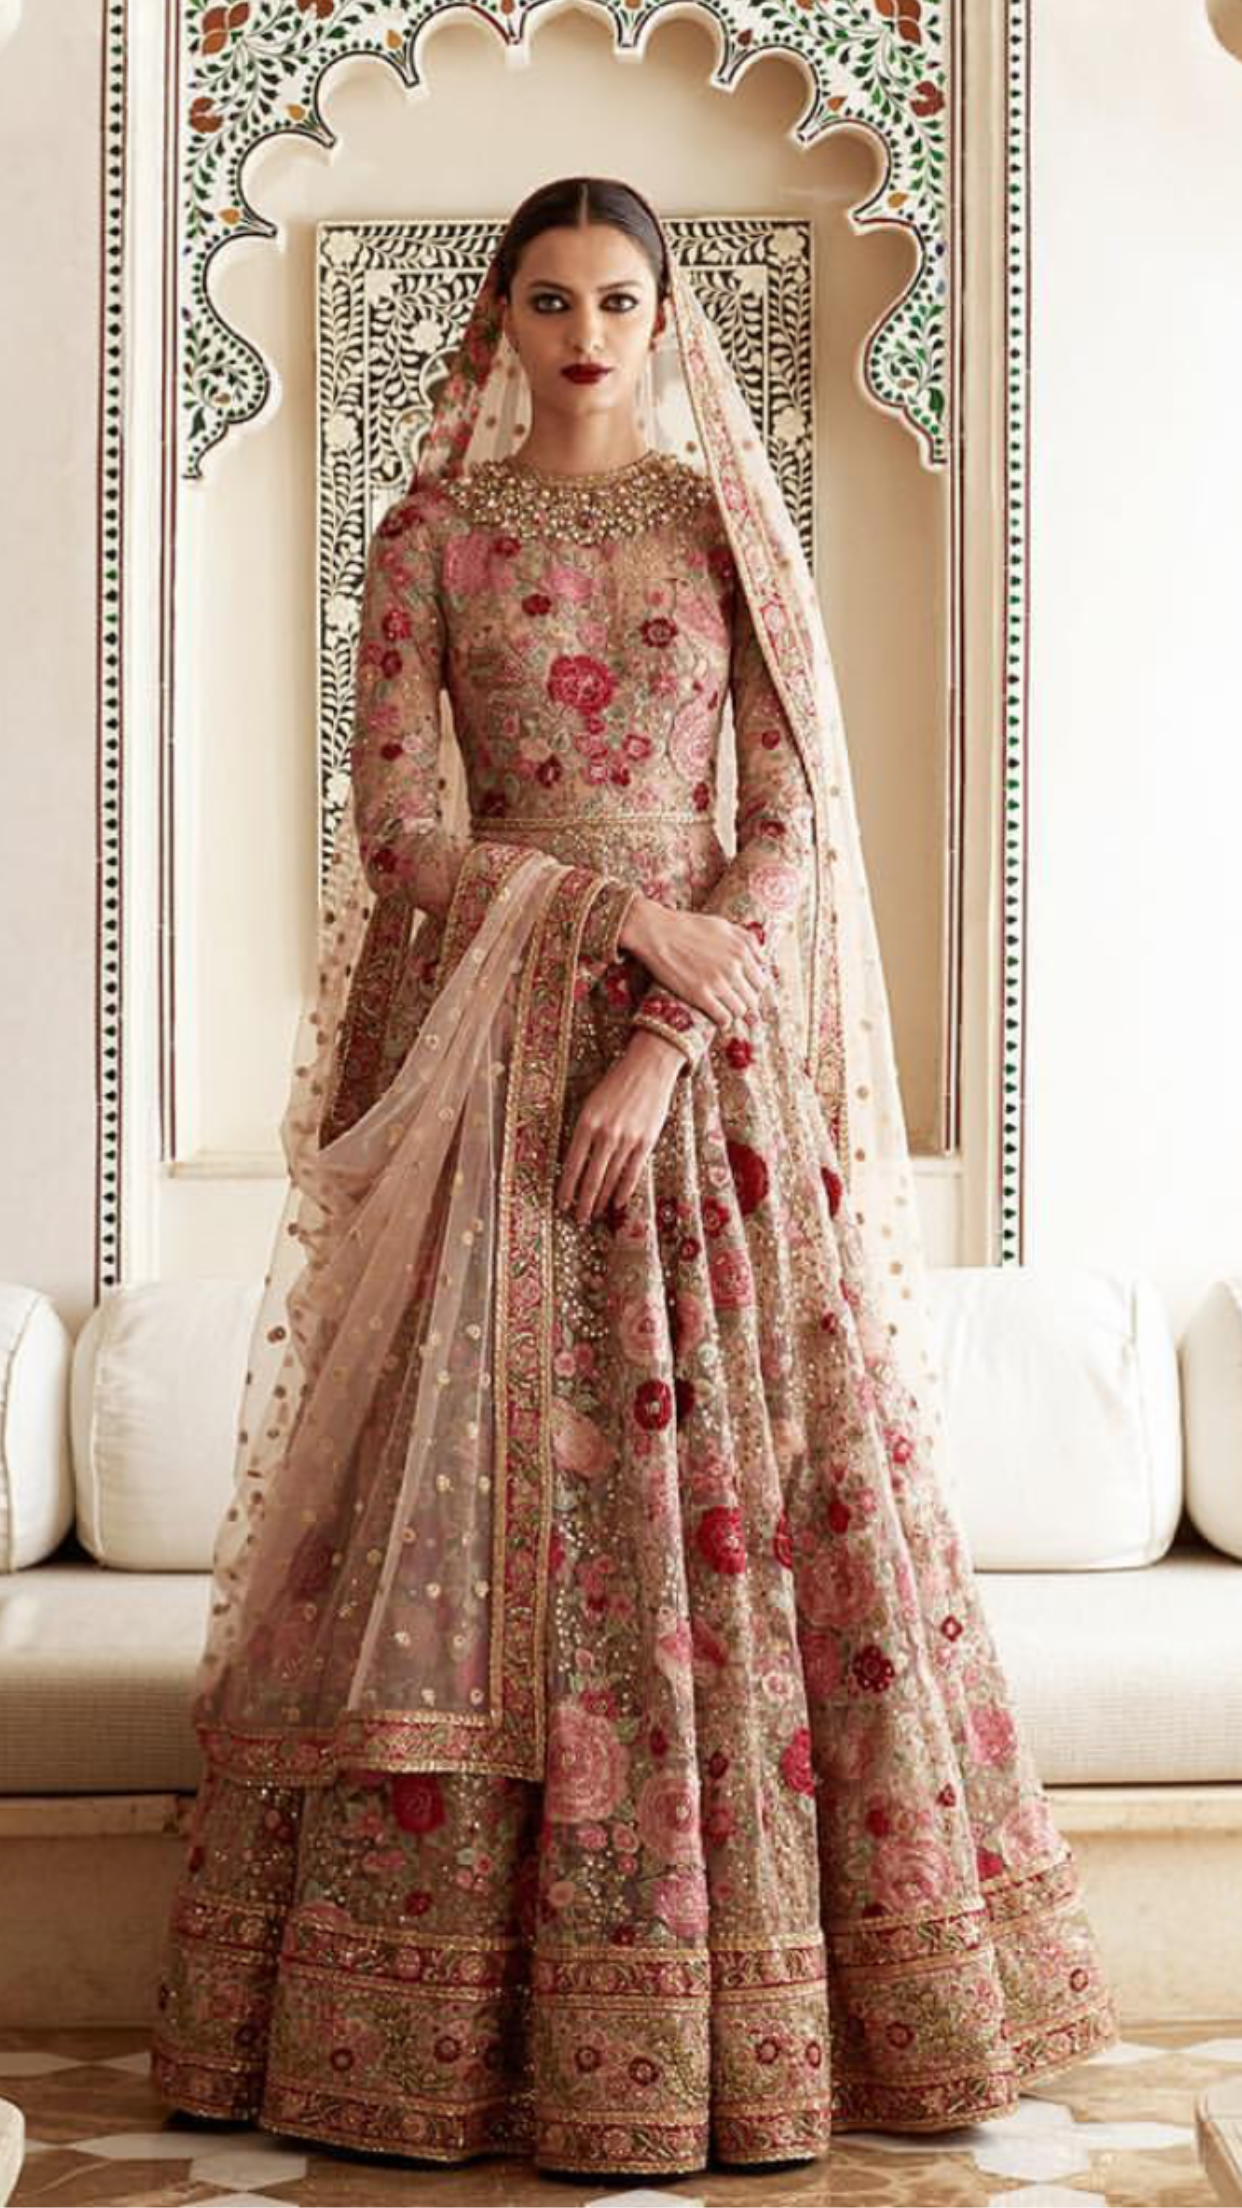 Pomegranate pink bridal lehenga bridal lehengas for Punjabi wedding dresses online